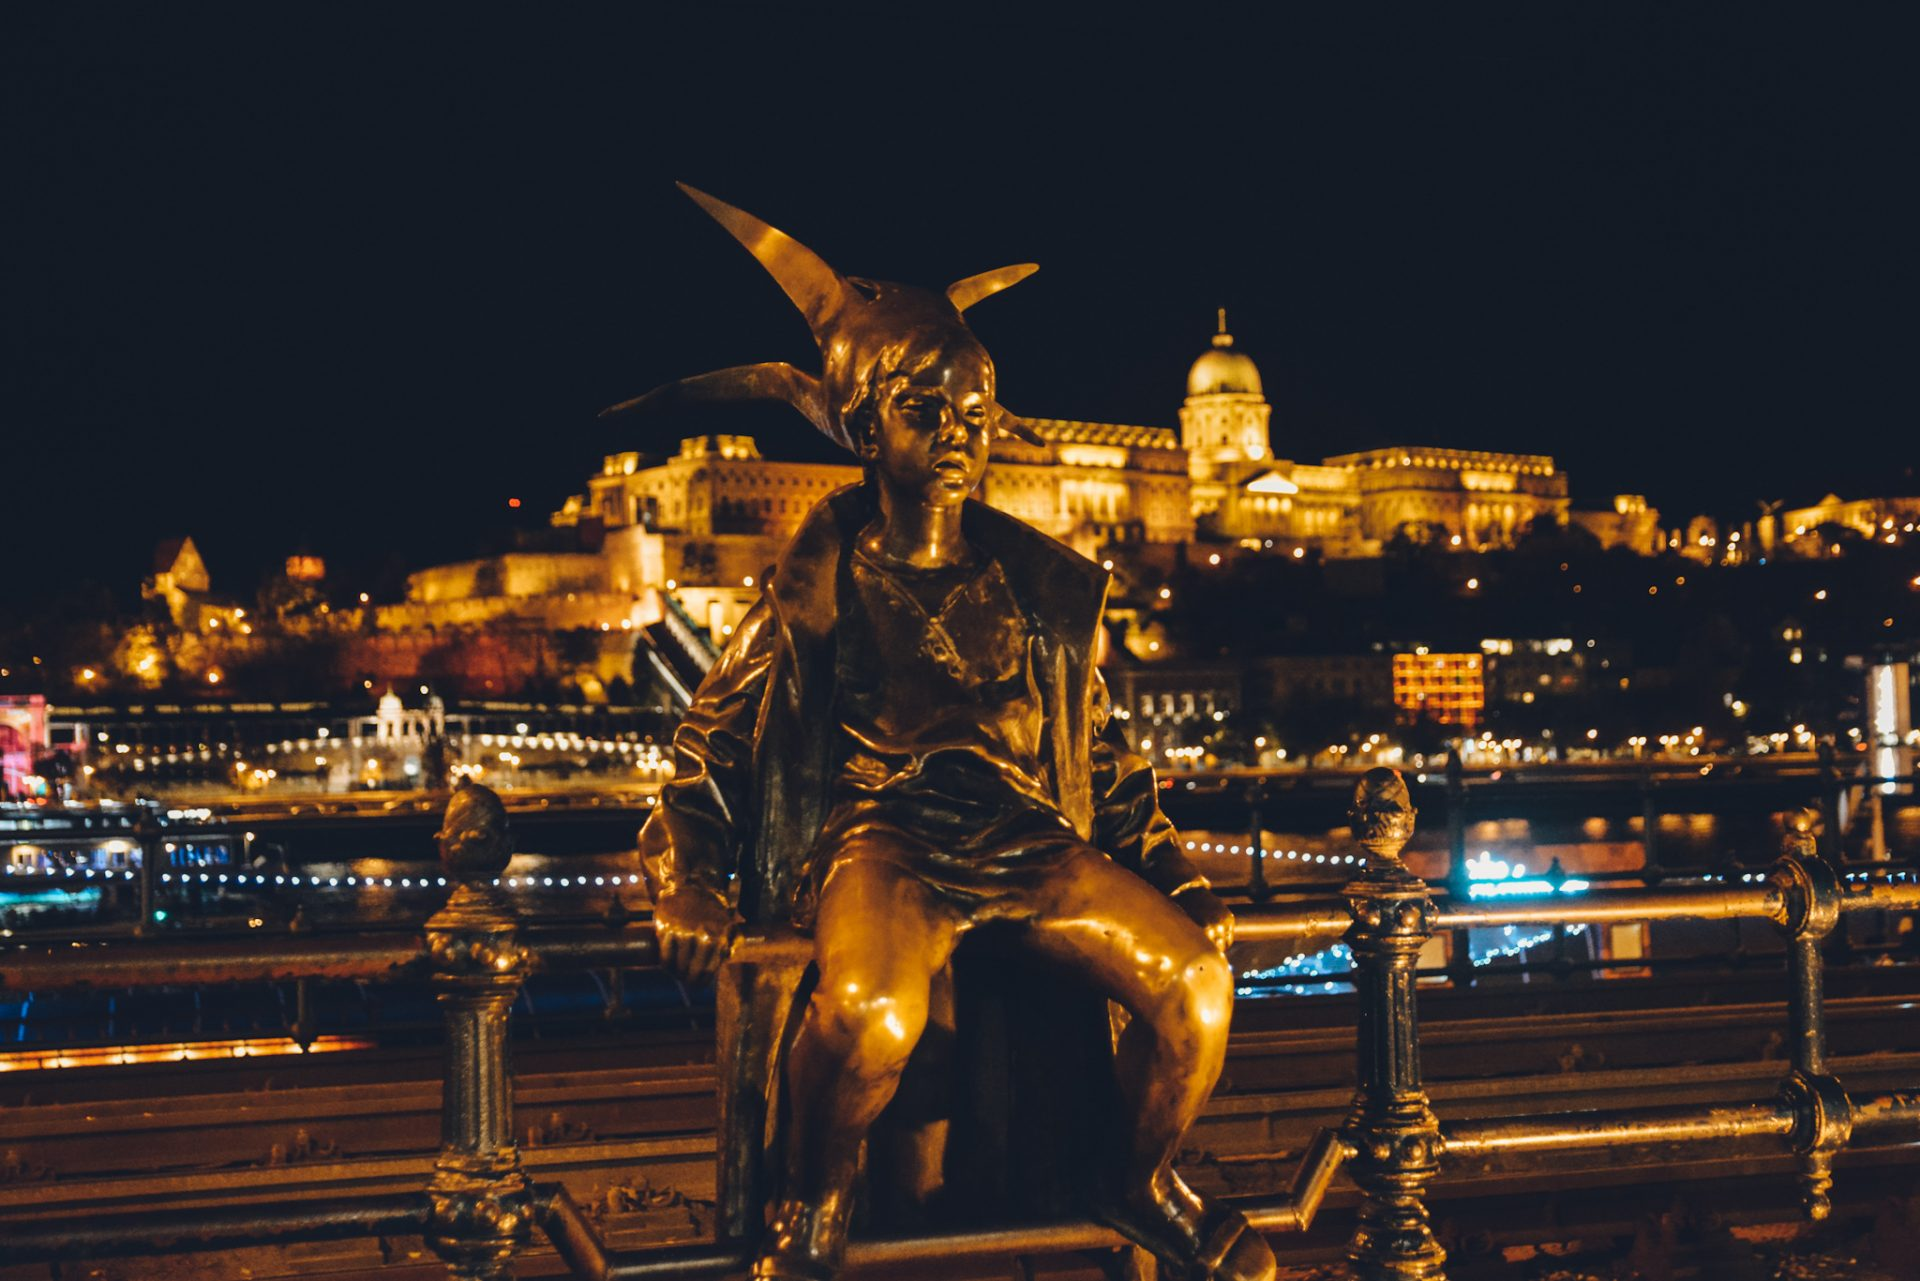 The Most Instagrammable Places in Budapest - Little Princess Statue